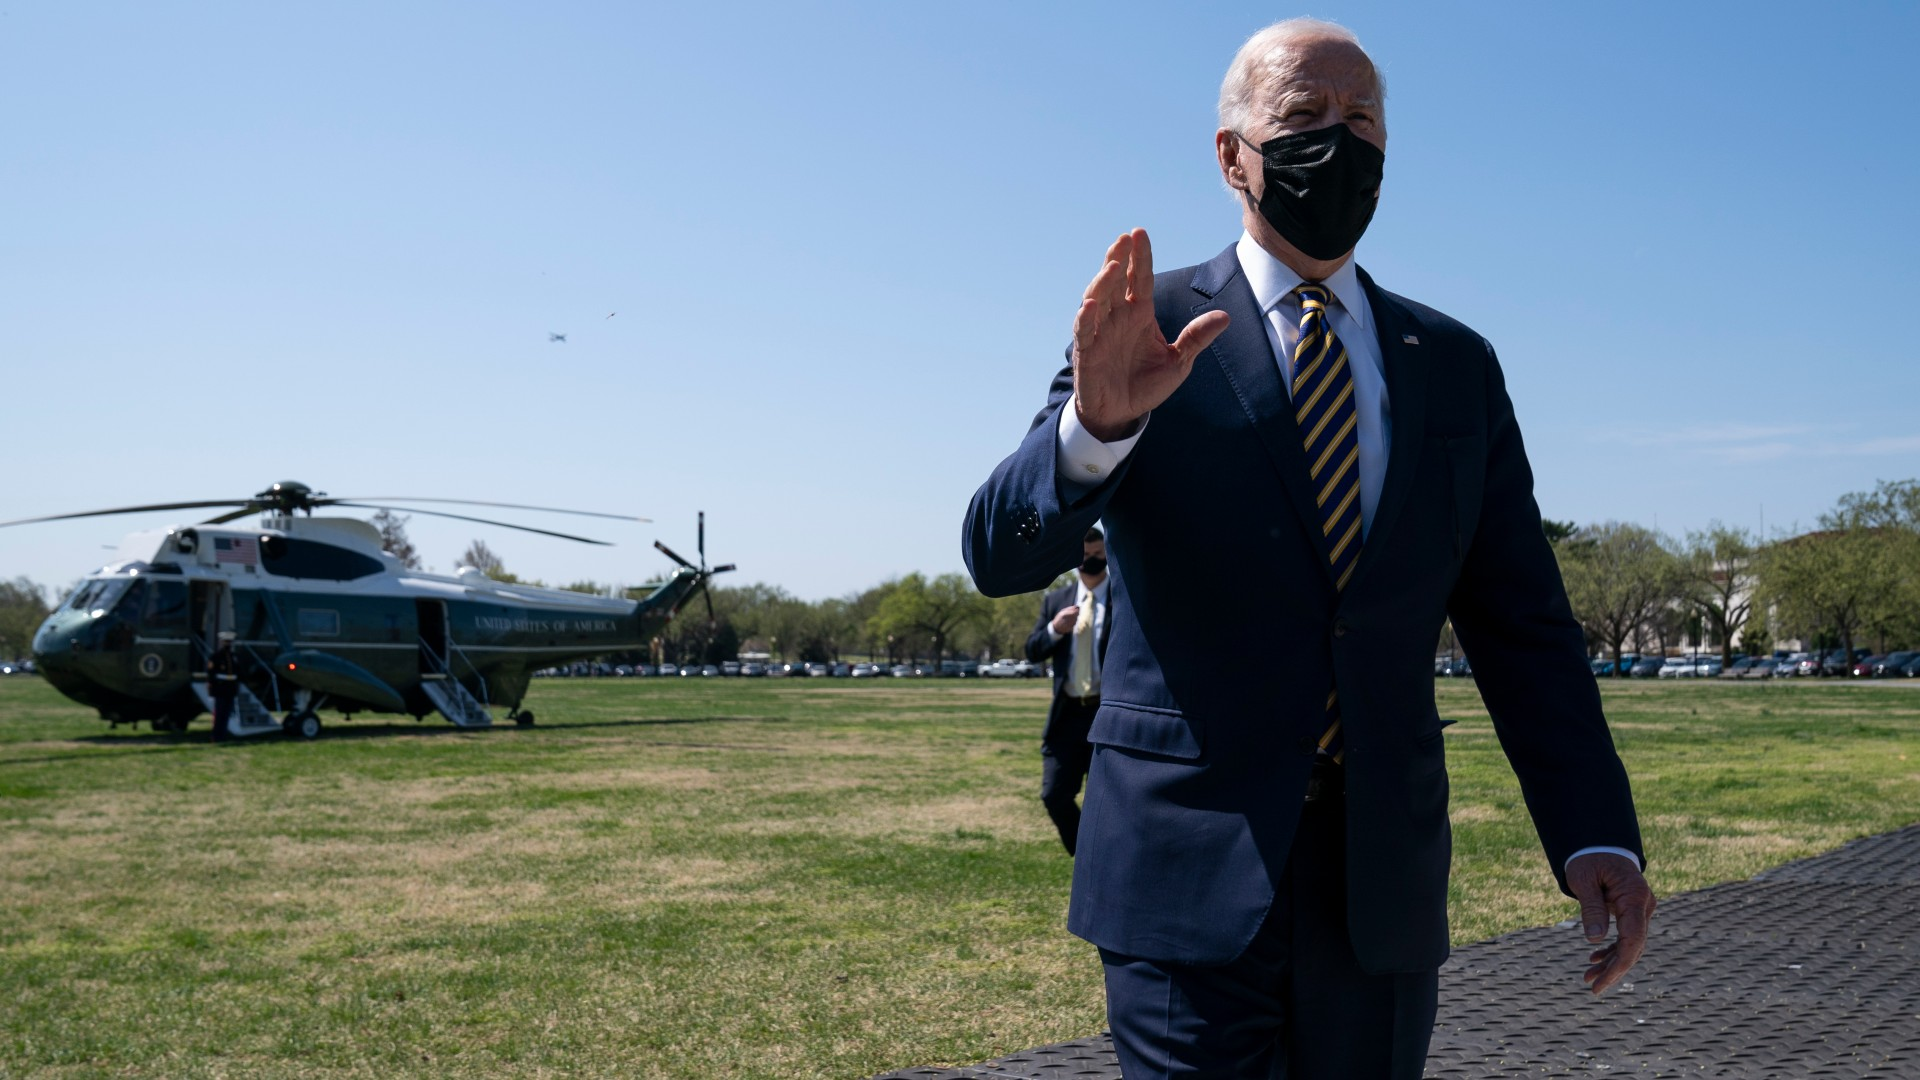 President Joe Biden talks with reporters on the Ellipse on the National Mall after spending the weekend at Camp David, Monday, April 5, 2021, in Washington. (AP Photo/Evan Vucci)